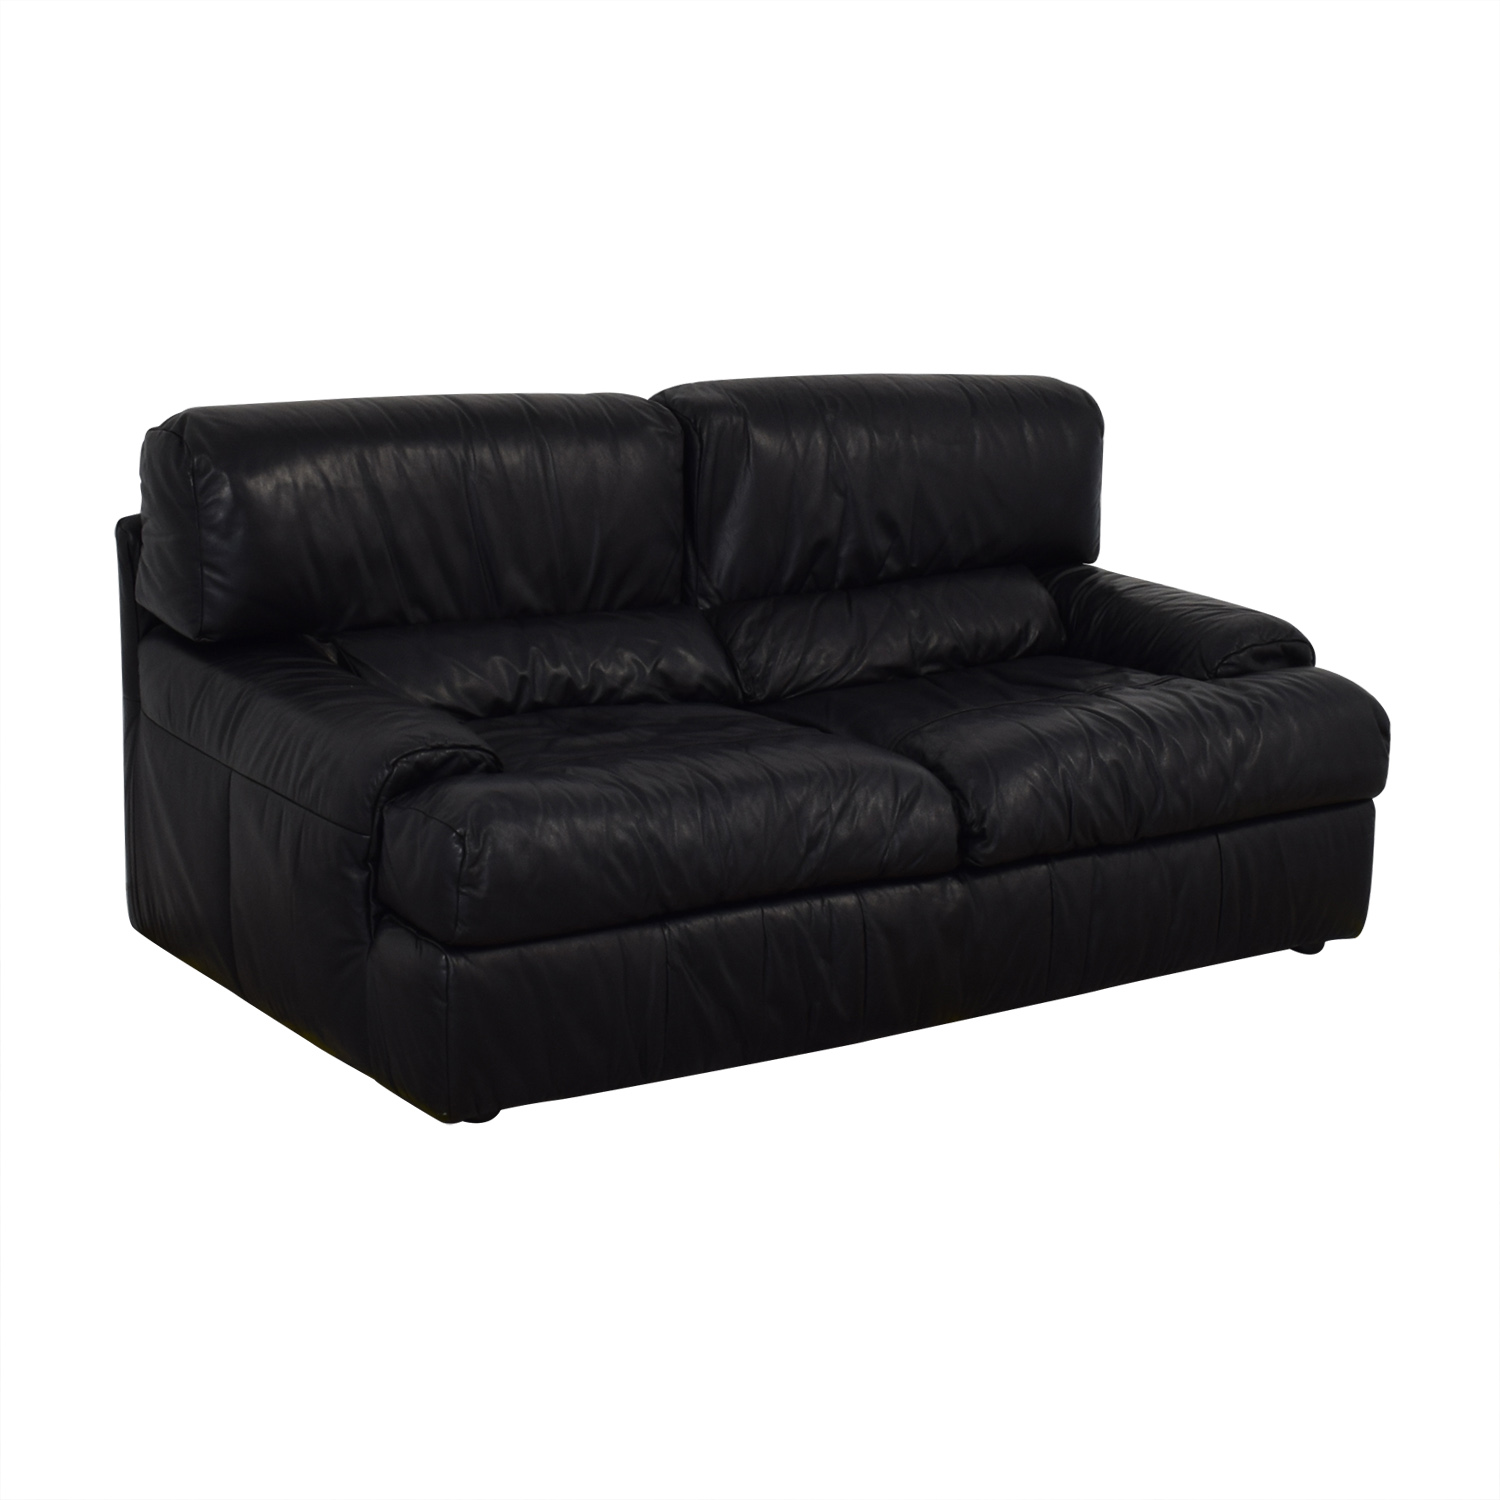 Natuzzi Natuzzi Black Leather Loveseat Sofas